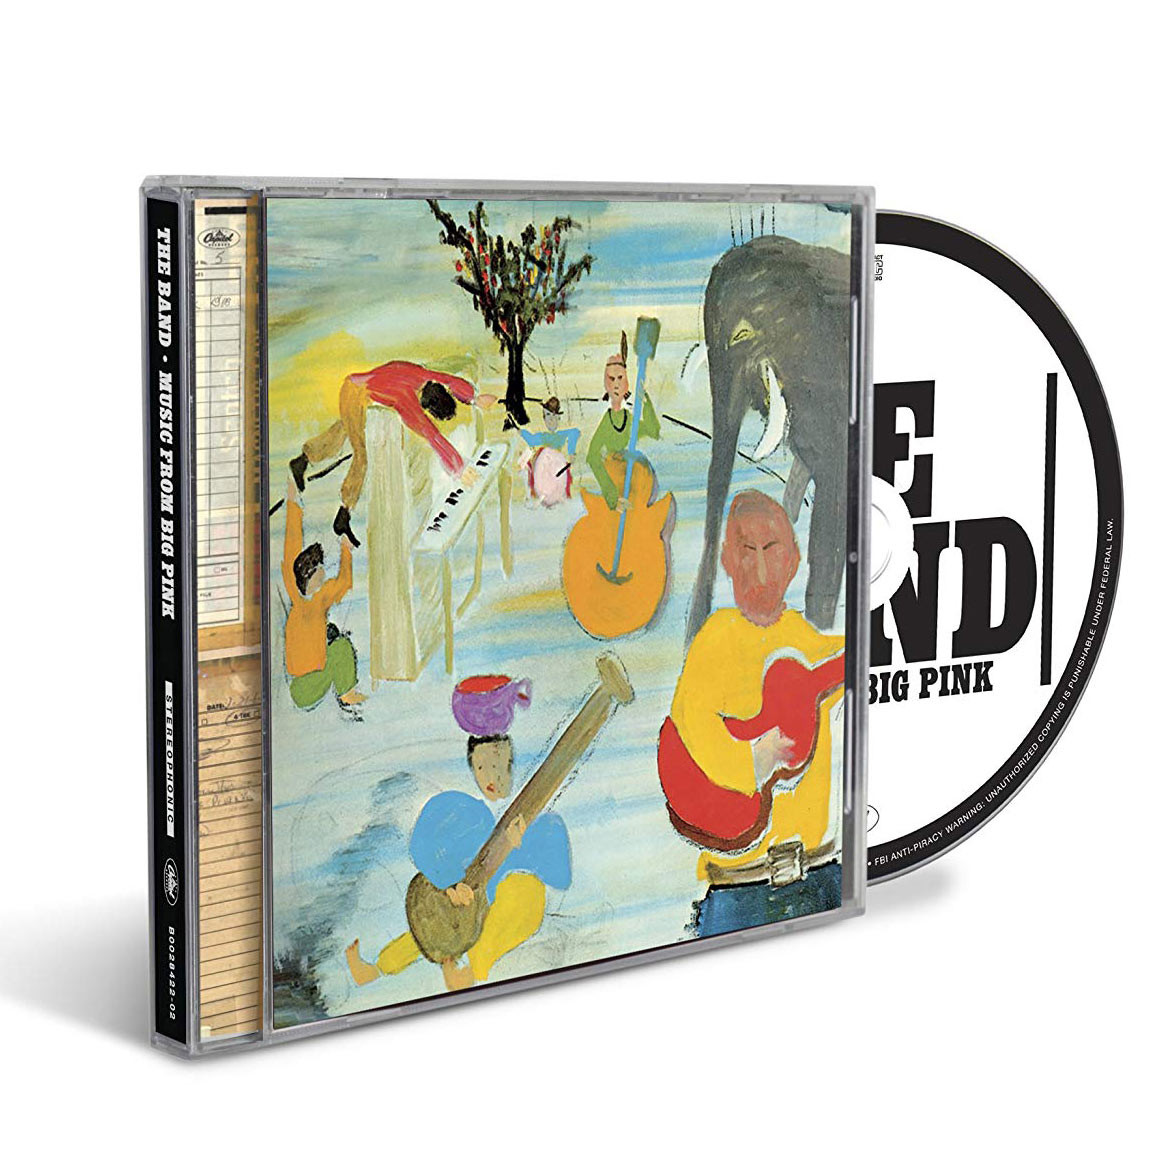 The Band - Music From Big Pink - 50th Anniversary Edition (CD)